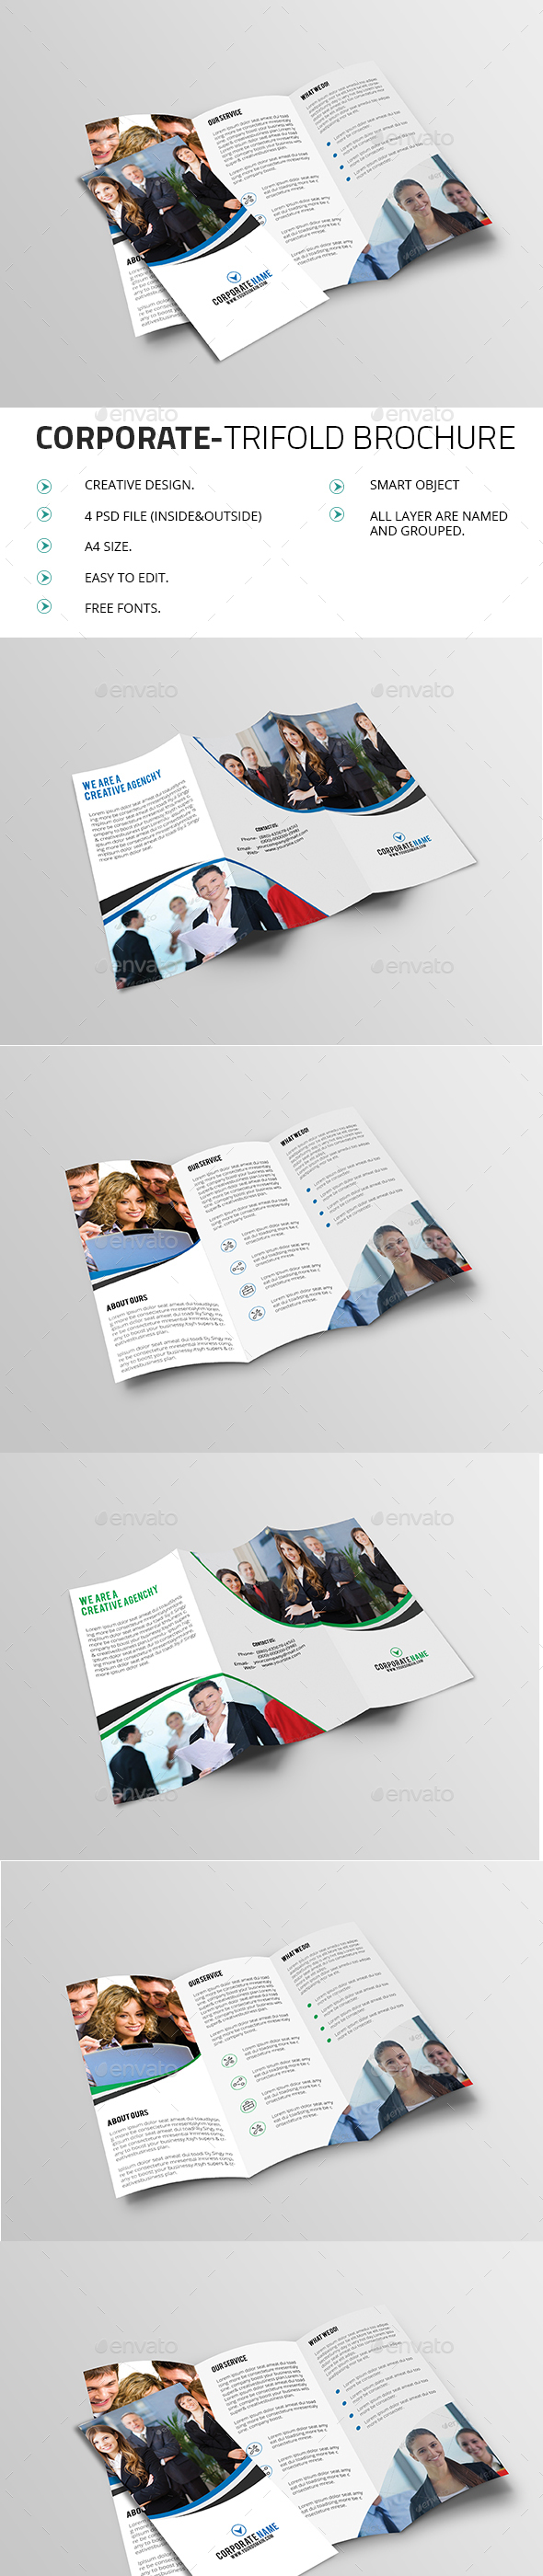 Corporate TriFold Brochure V01 - Brochures Print Templates